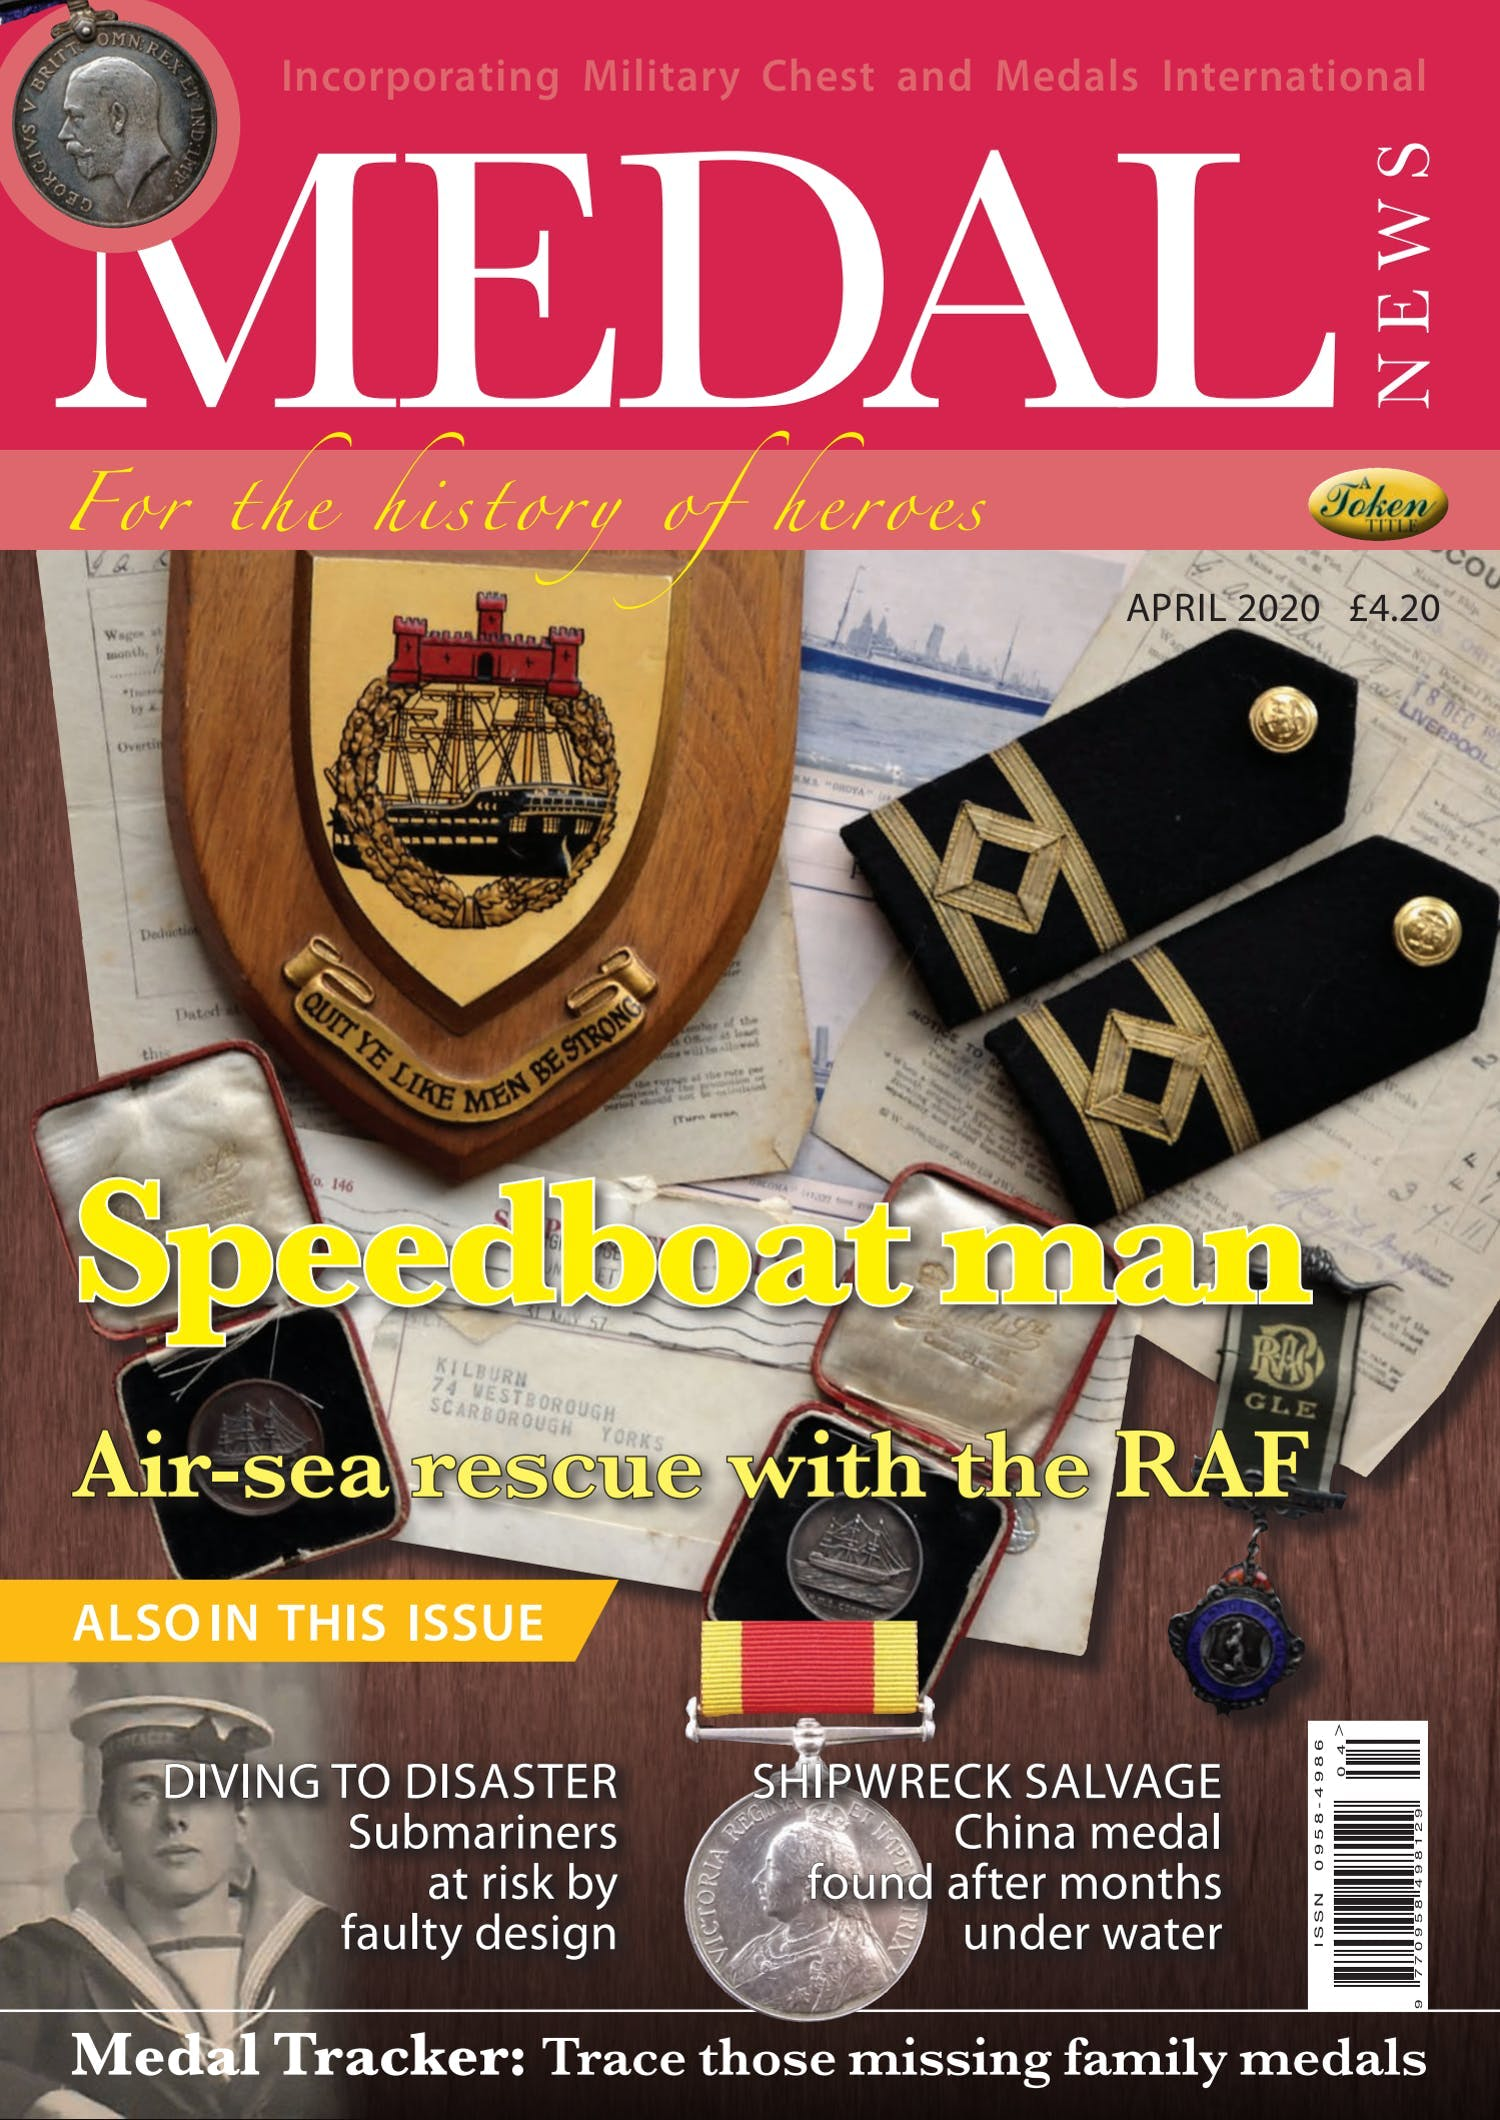 The front cover of Medal News, Volume 58, Number 4, April 2020